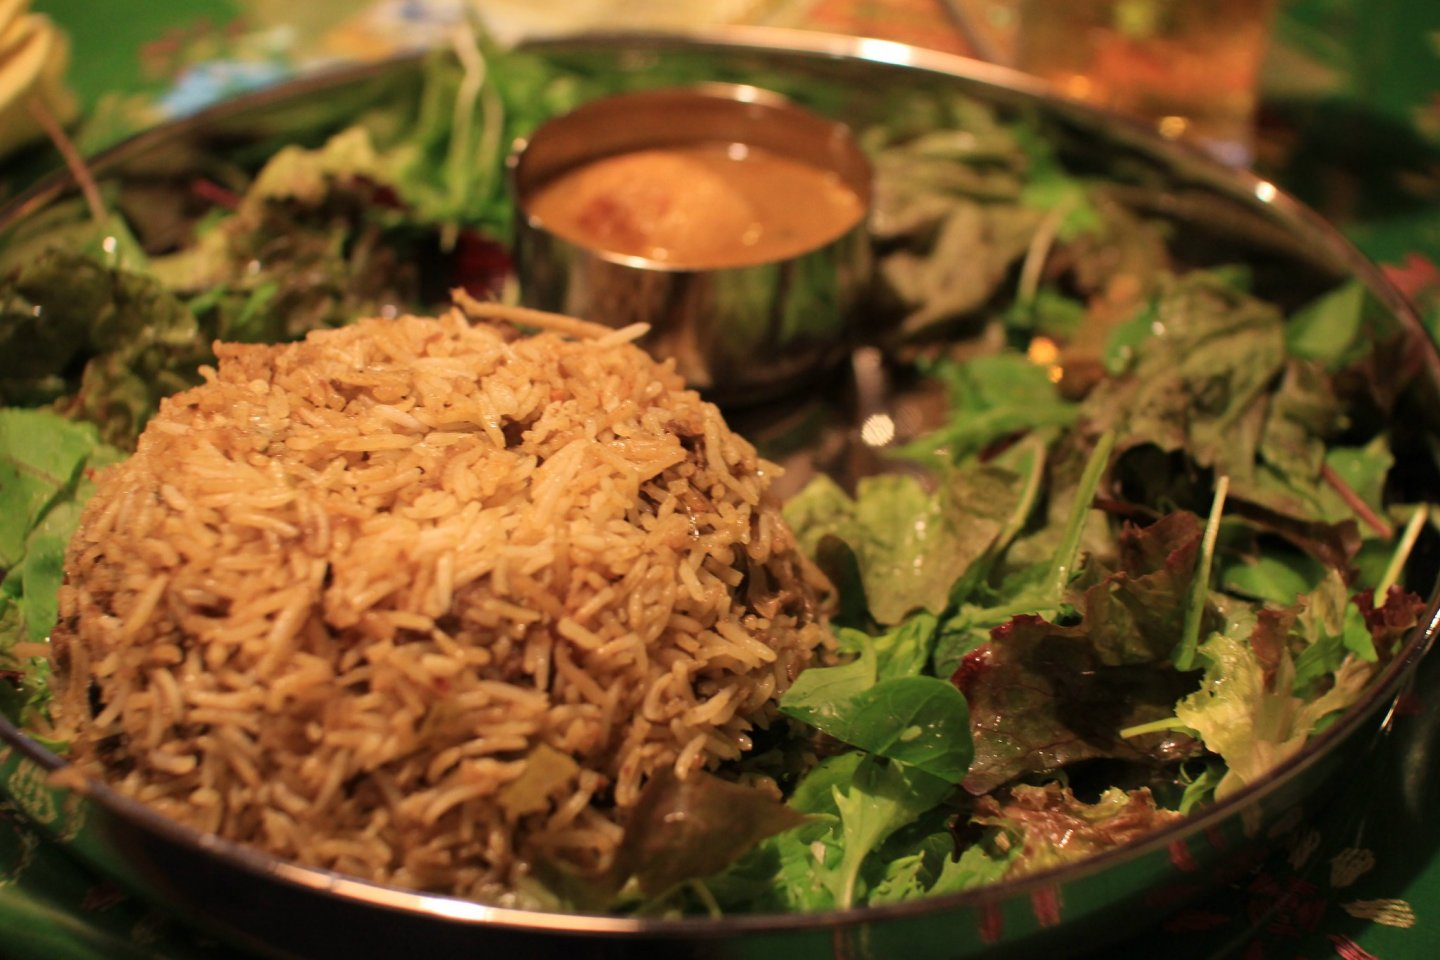 Biryani is a popular dish